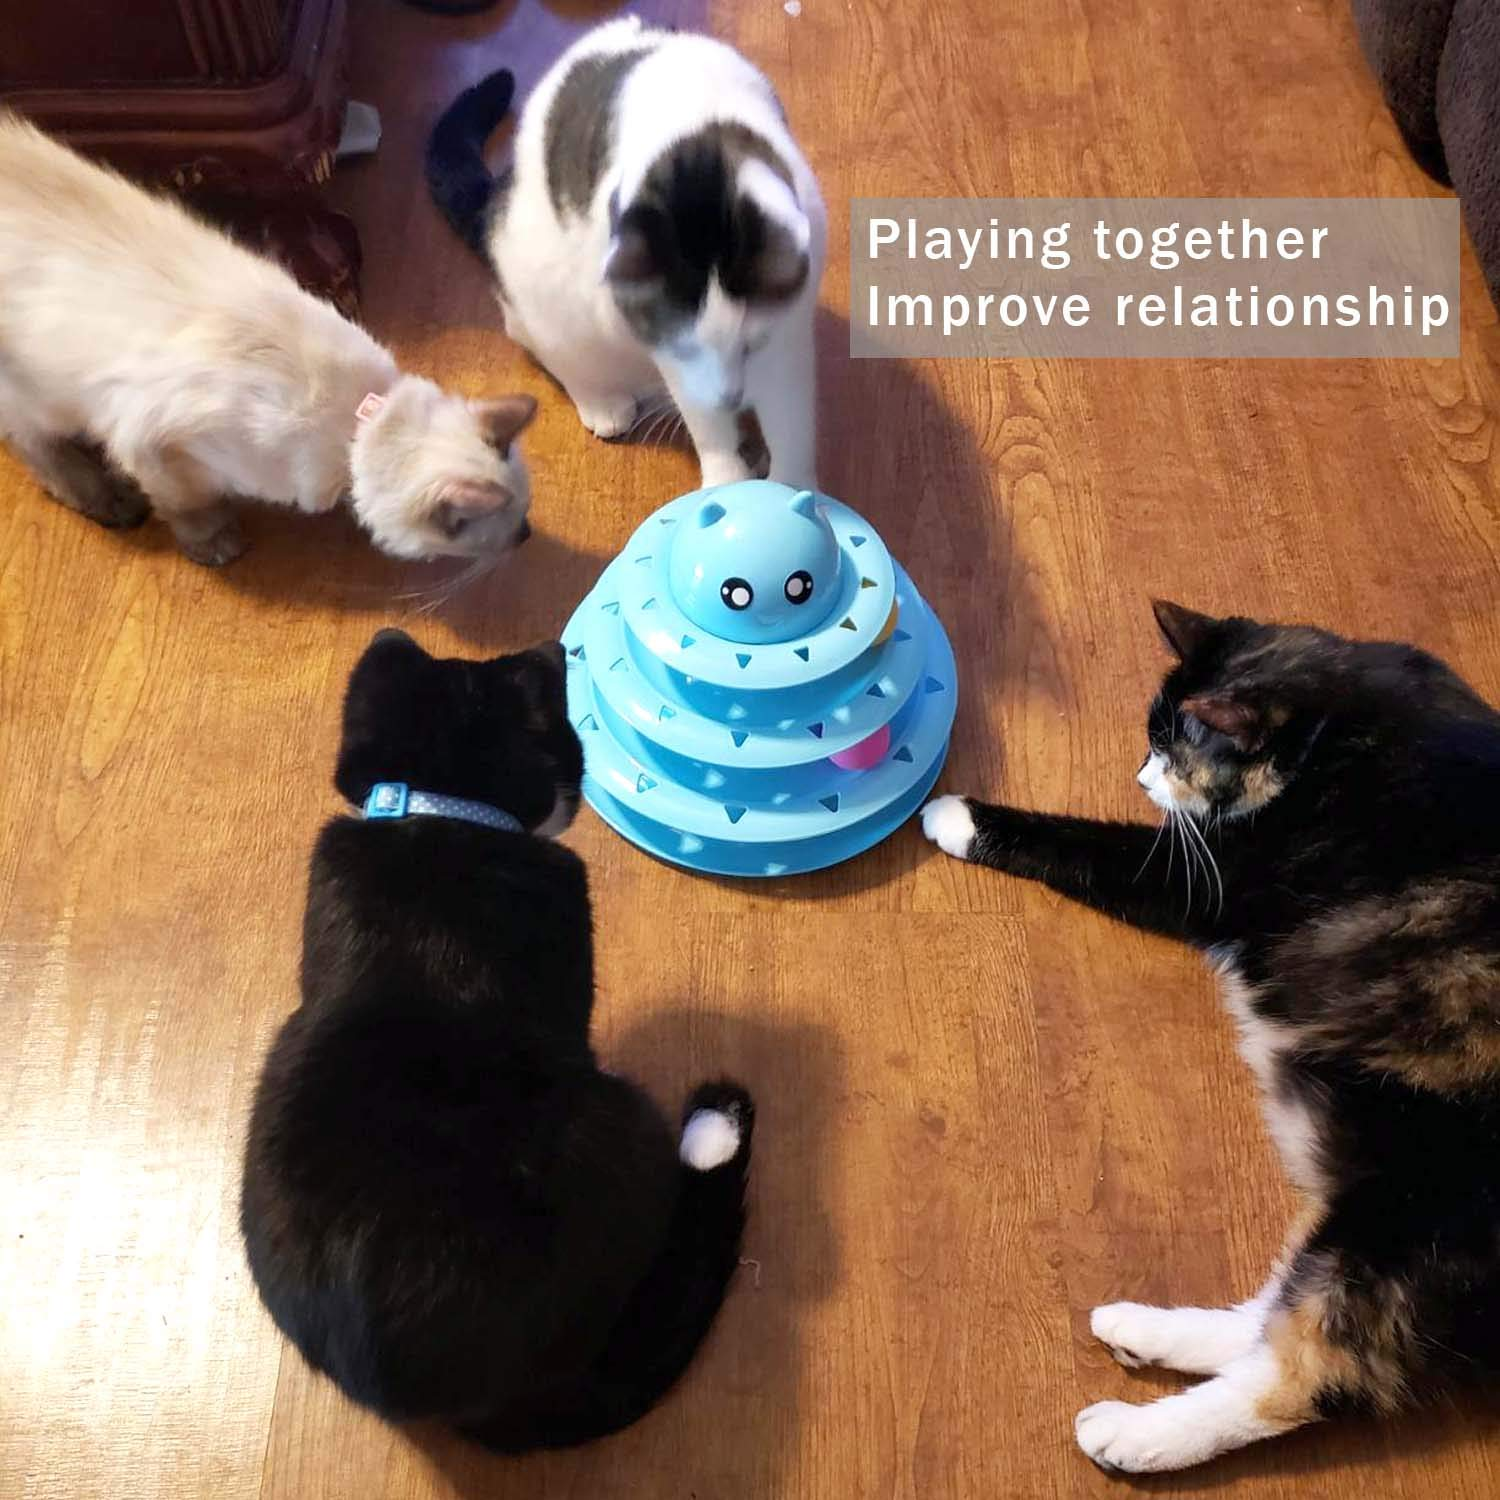 Pets Empire Cat Roller Toys, Three Layer Cat Toy,Kitten Three-Layer Intellectual Play Toy Removable Cat Turntable Disc,Pet Ball Roller Toy,1 Piece (Blue)